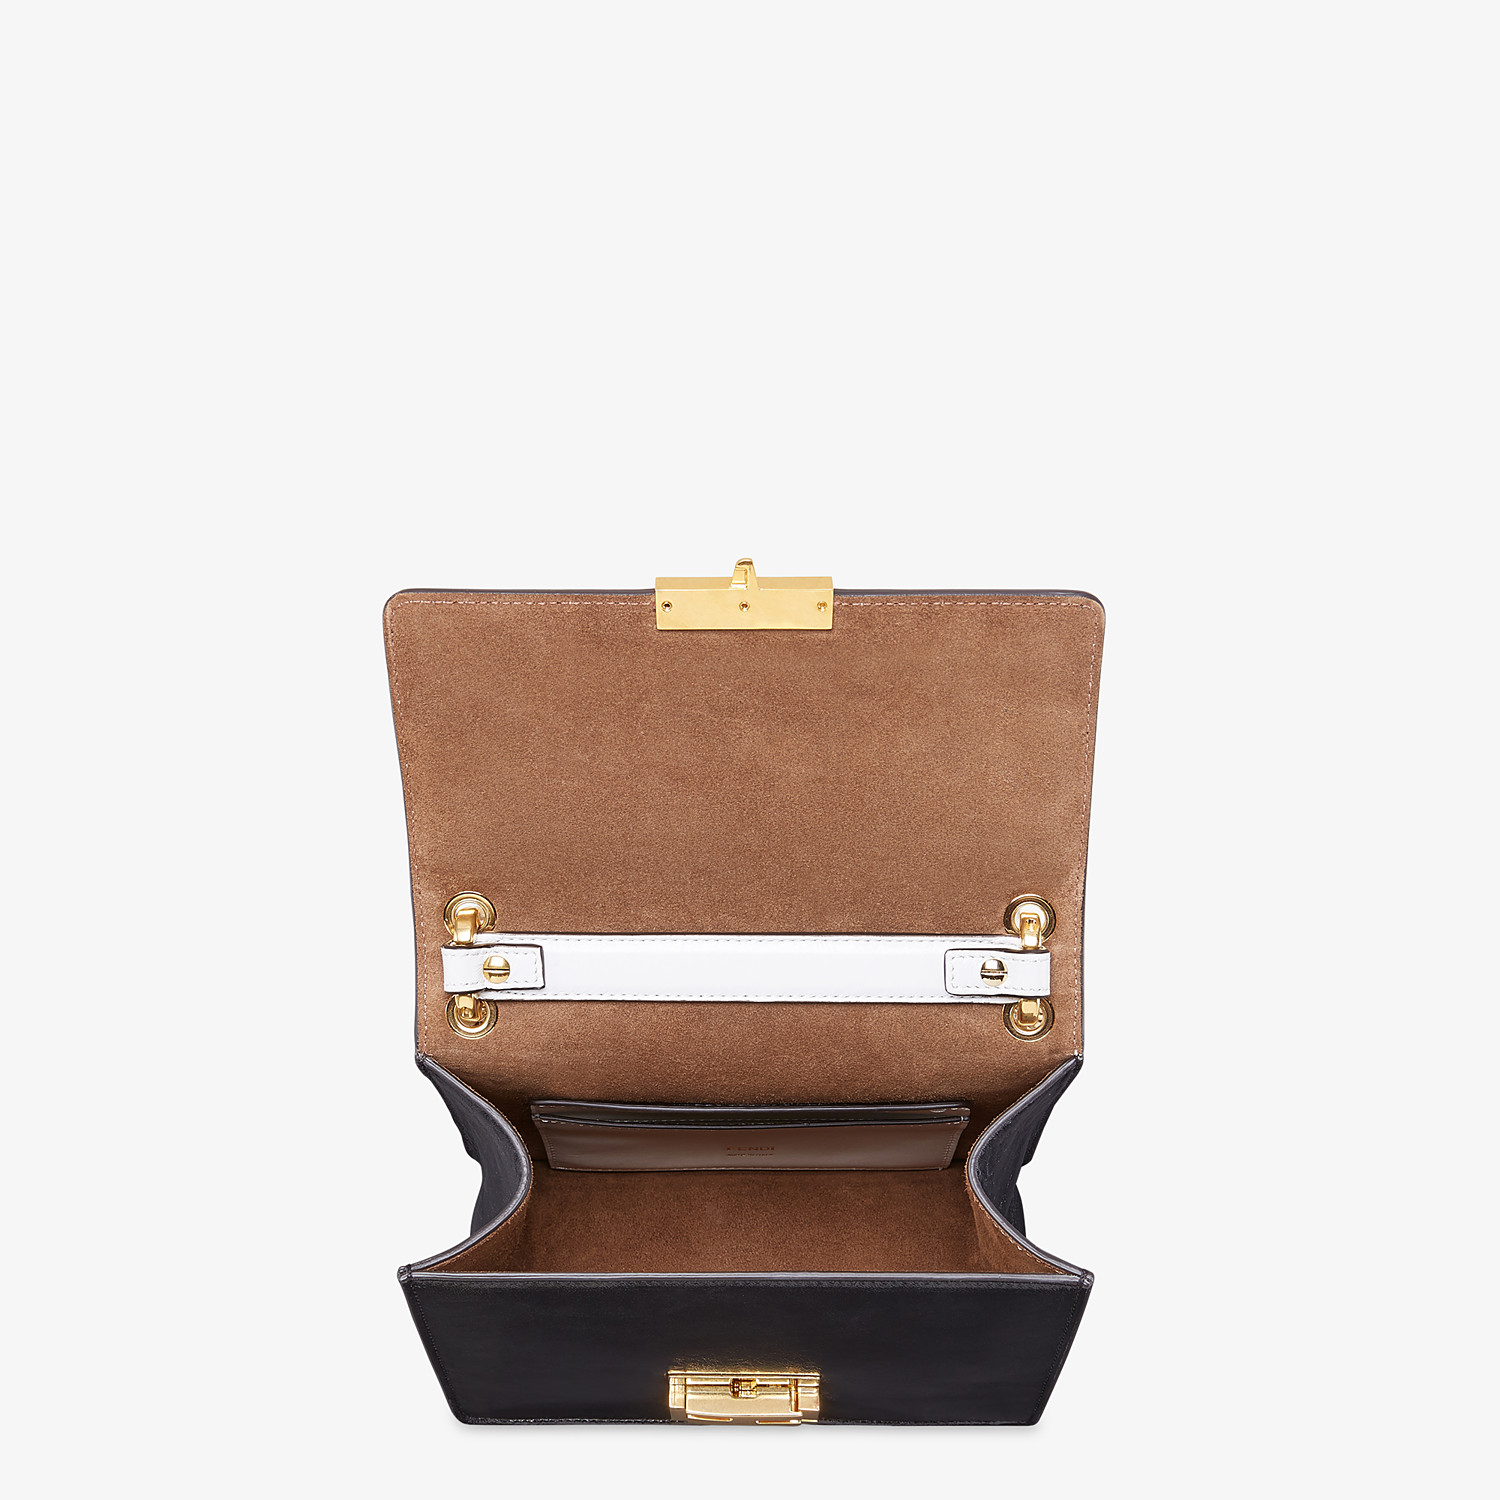 FENDI KAN U SMALL - Leather and suede minibag - view 5 detail